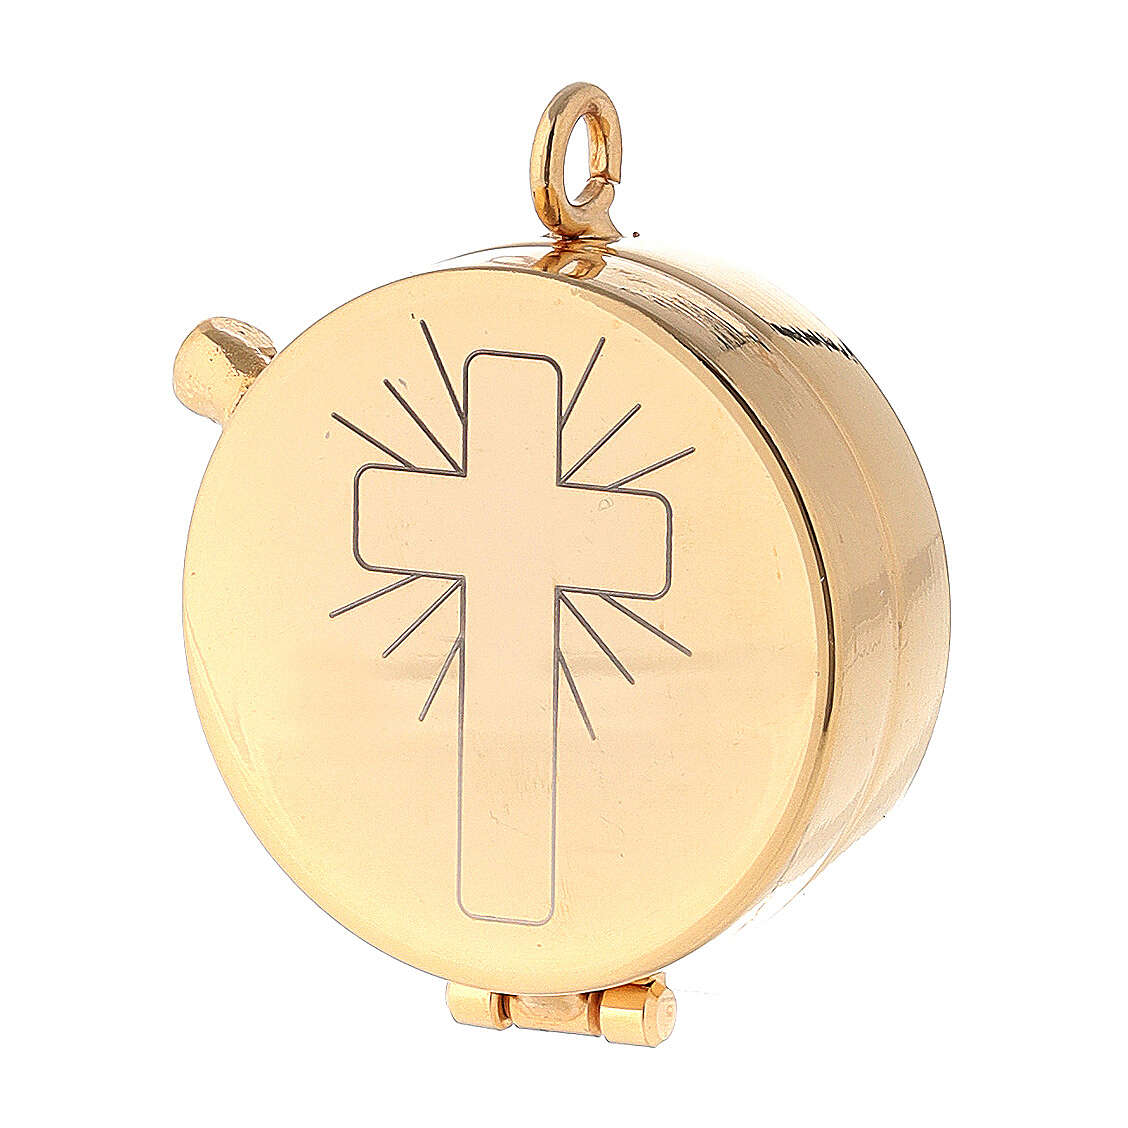 Gold plated pyx with engraved cross 2 in 3